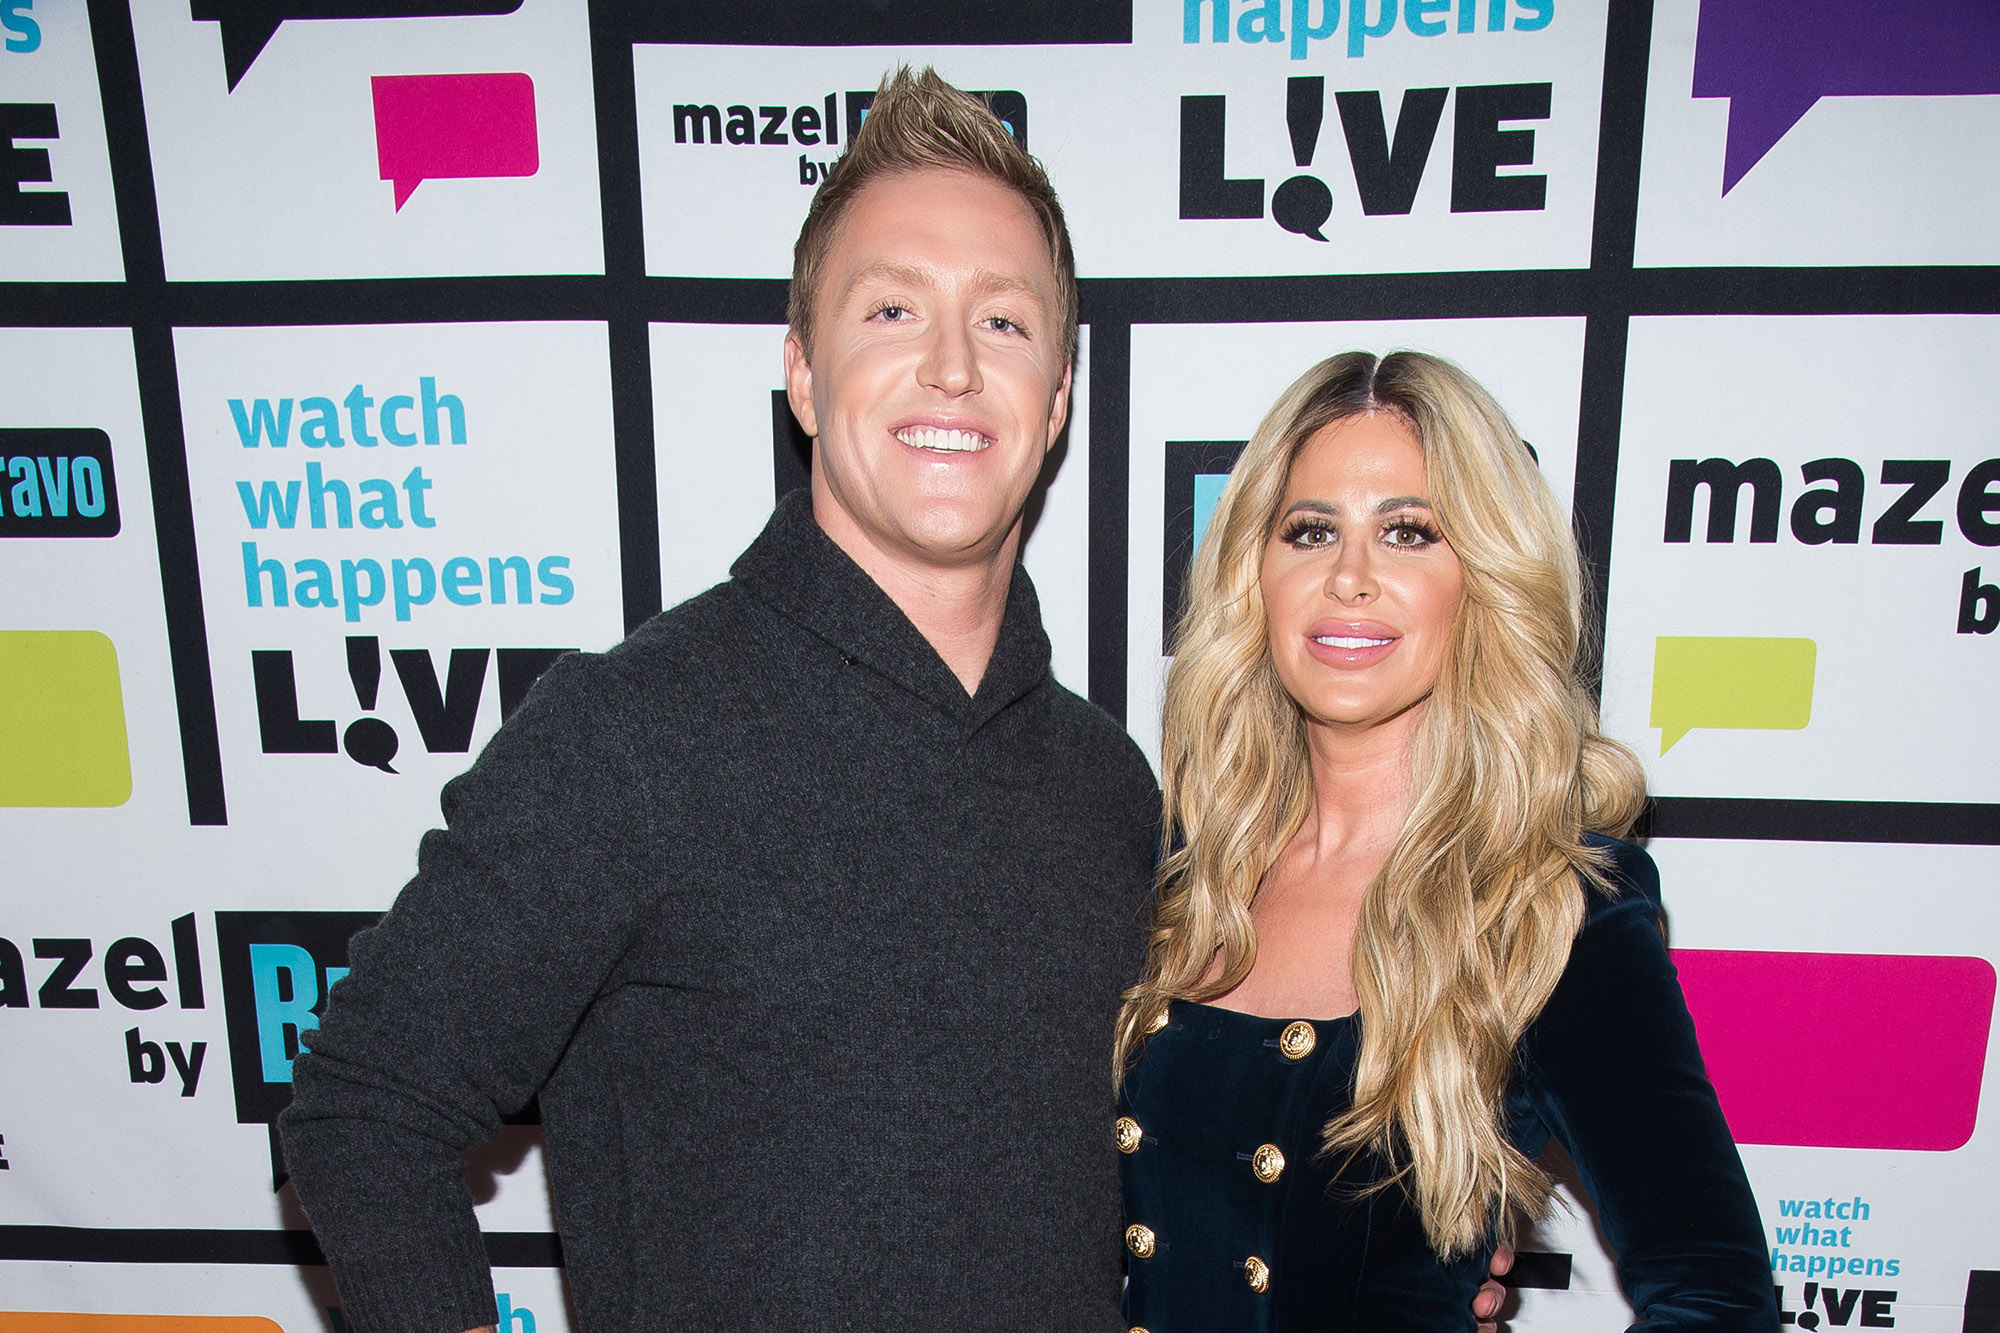 What Does Kim Zolciak-Biermann Think of Khloe Kardashian's Pregnancy Rumors?